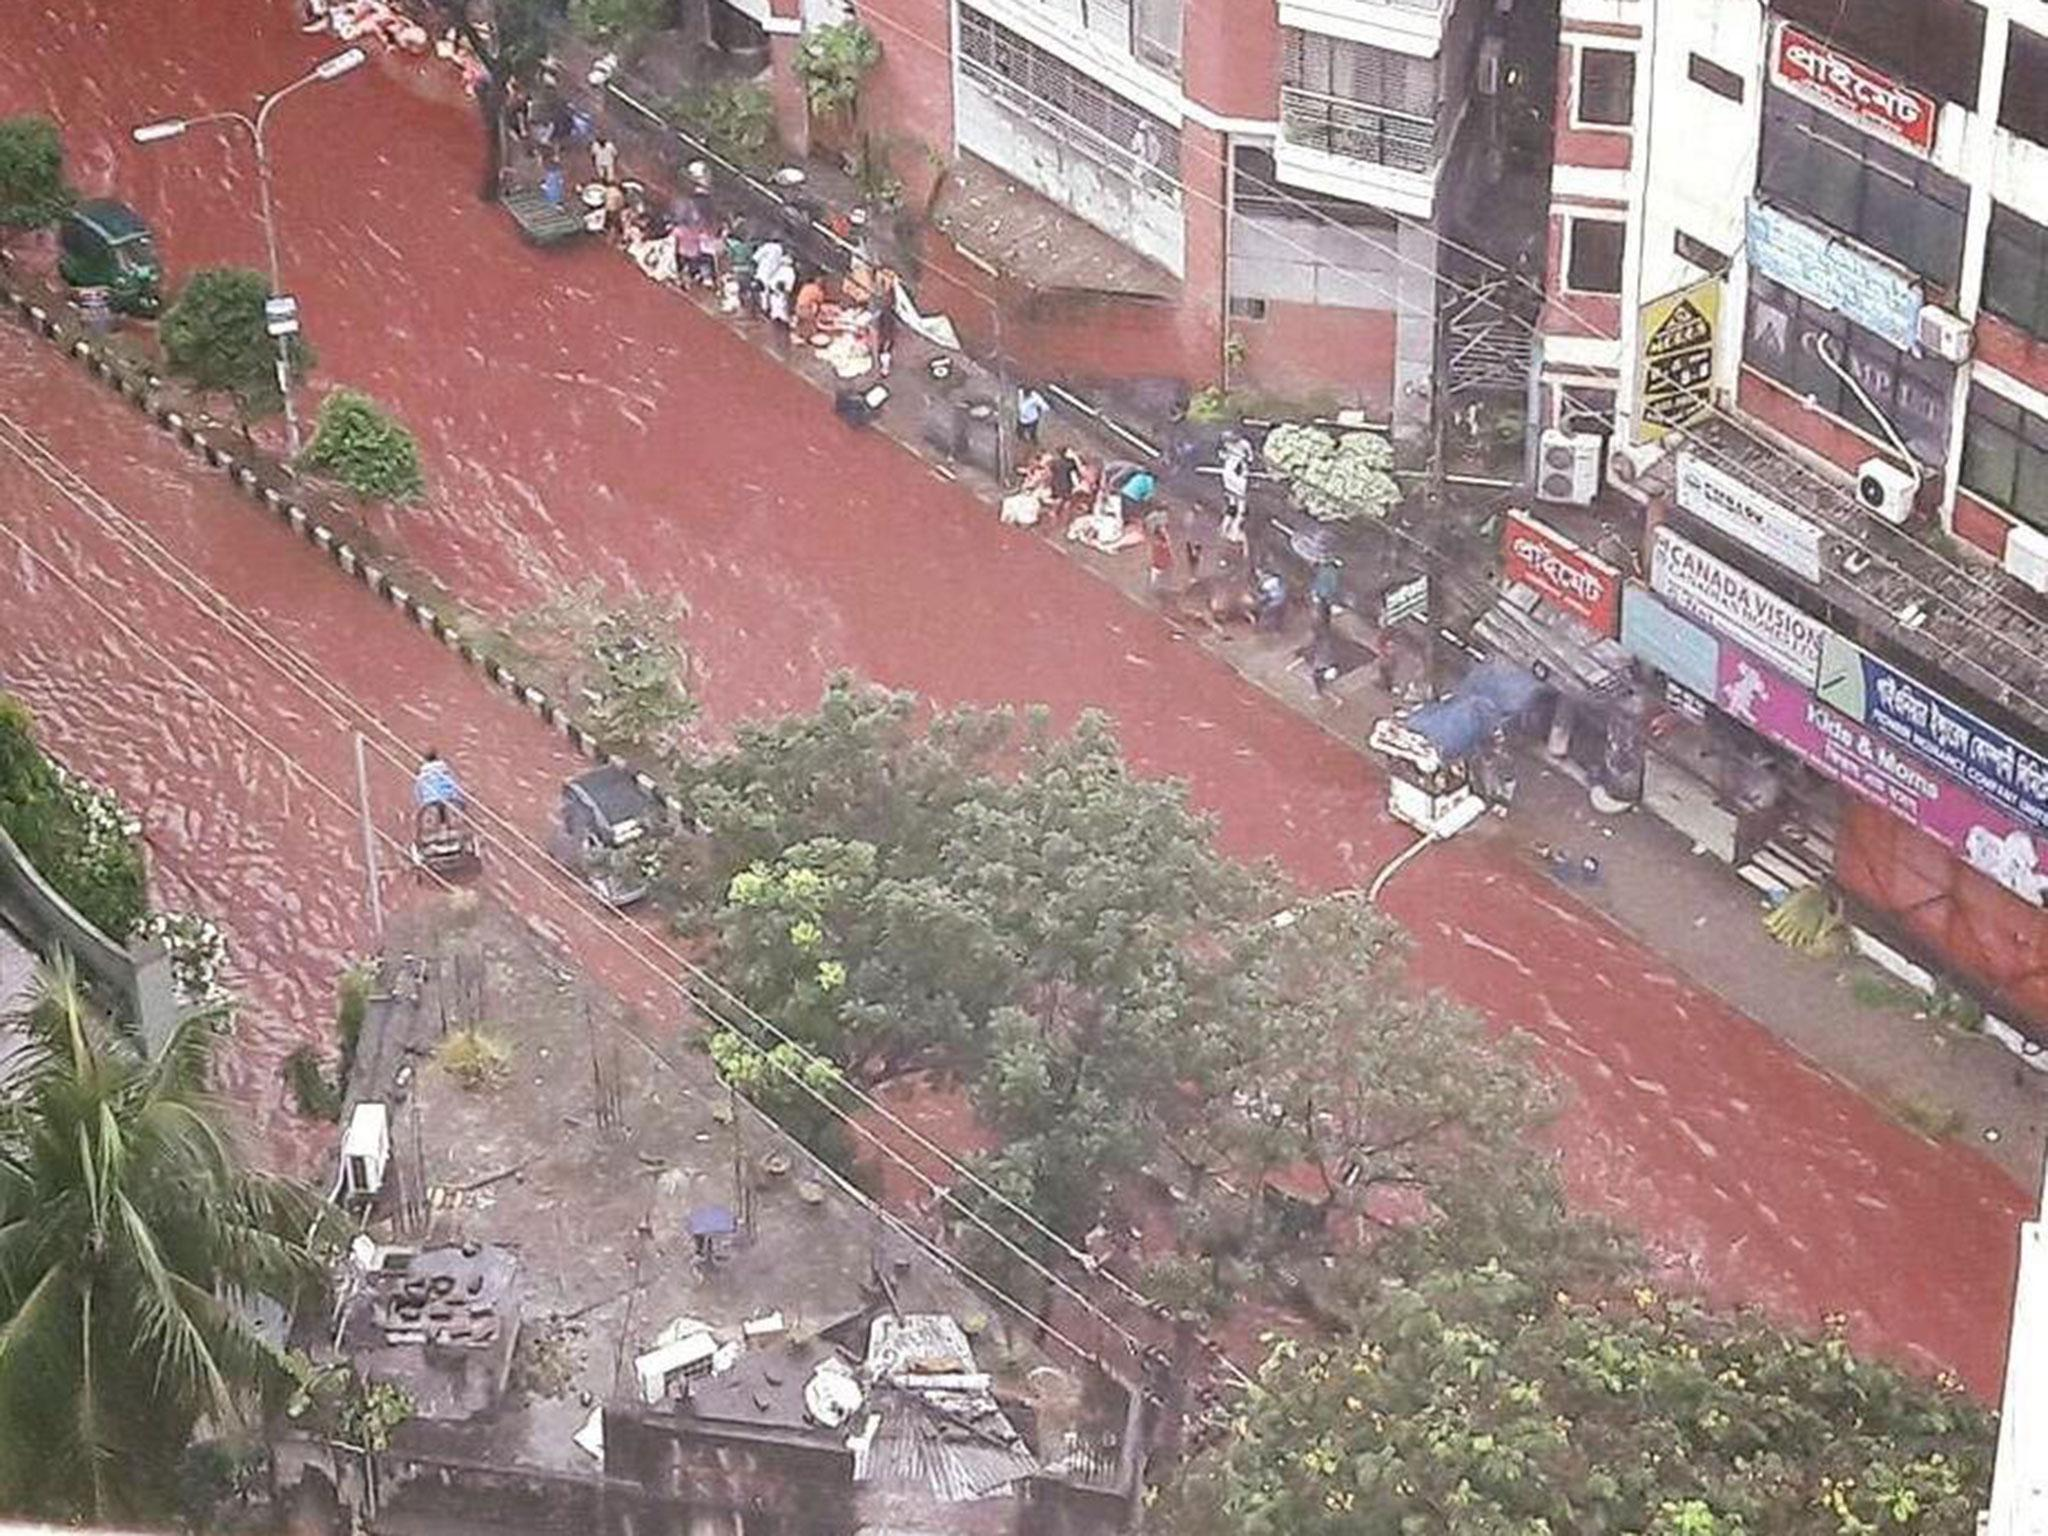 Blood runs through streets of Dhaka after mixing with monsoon rains during Eid al-Adha celebrations